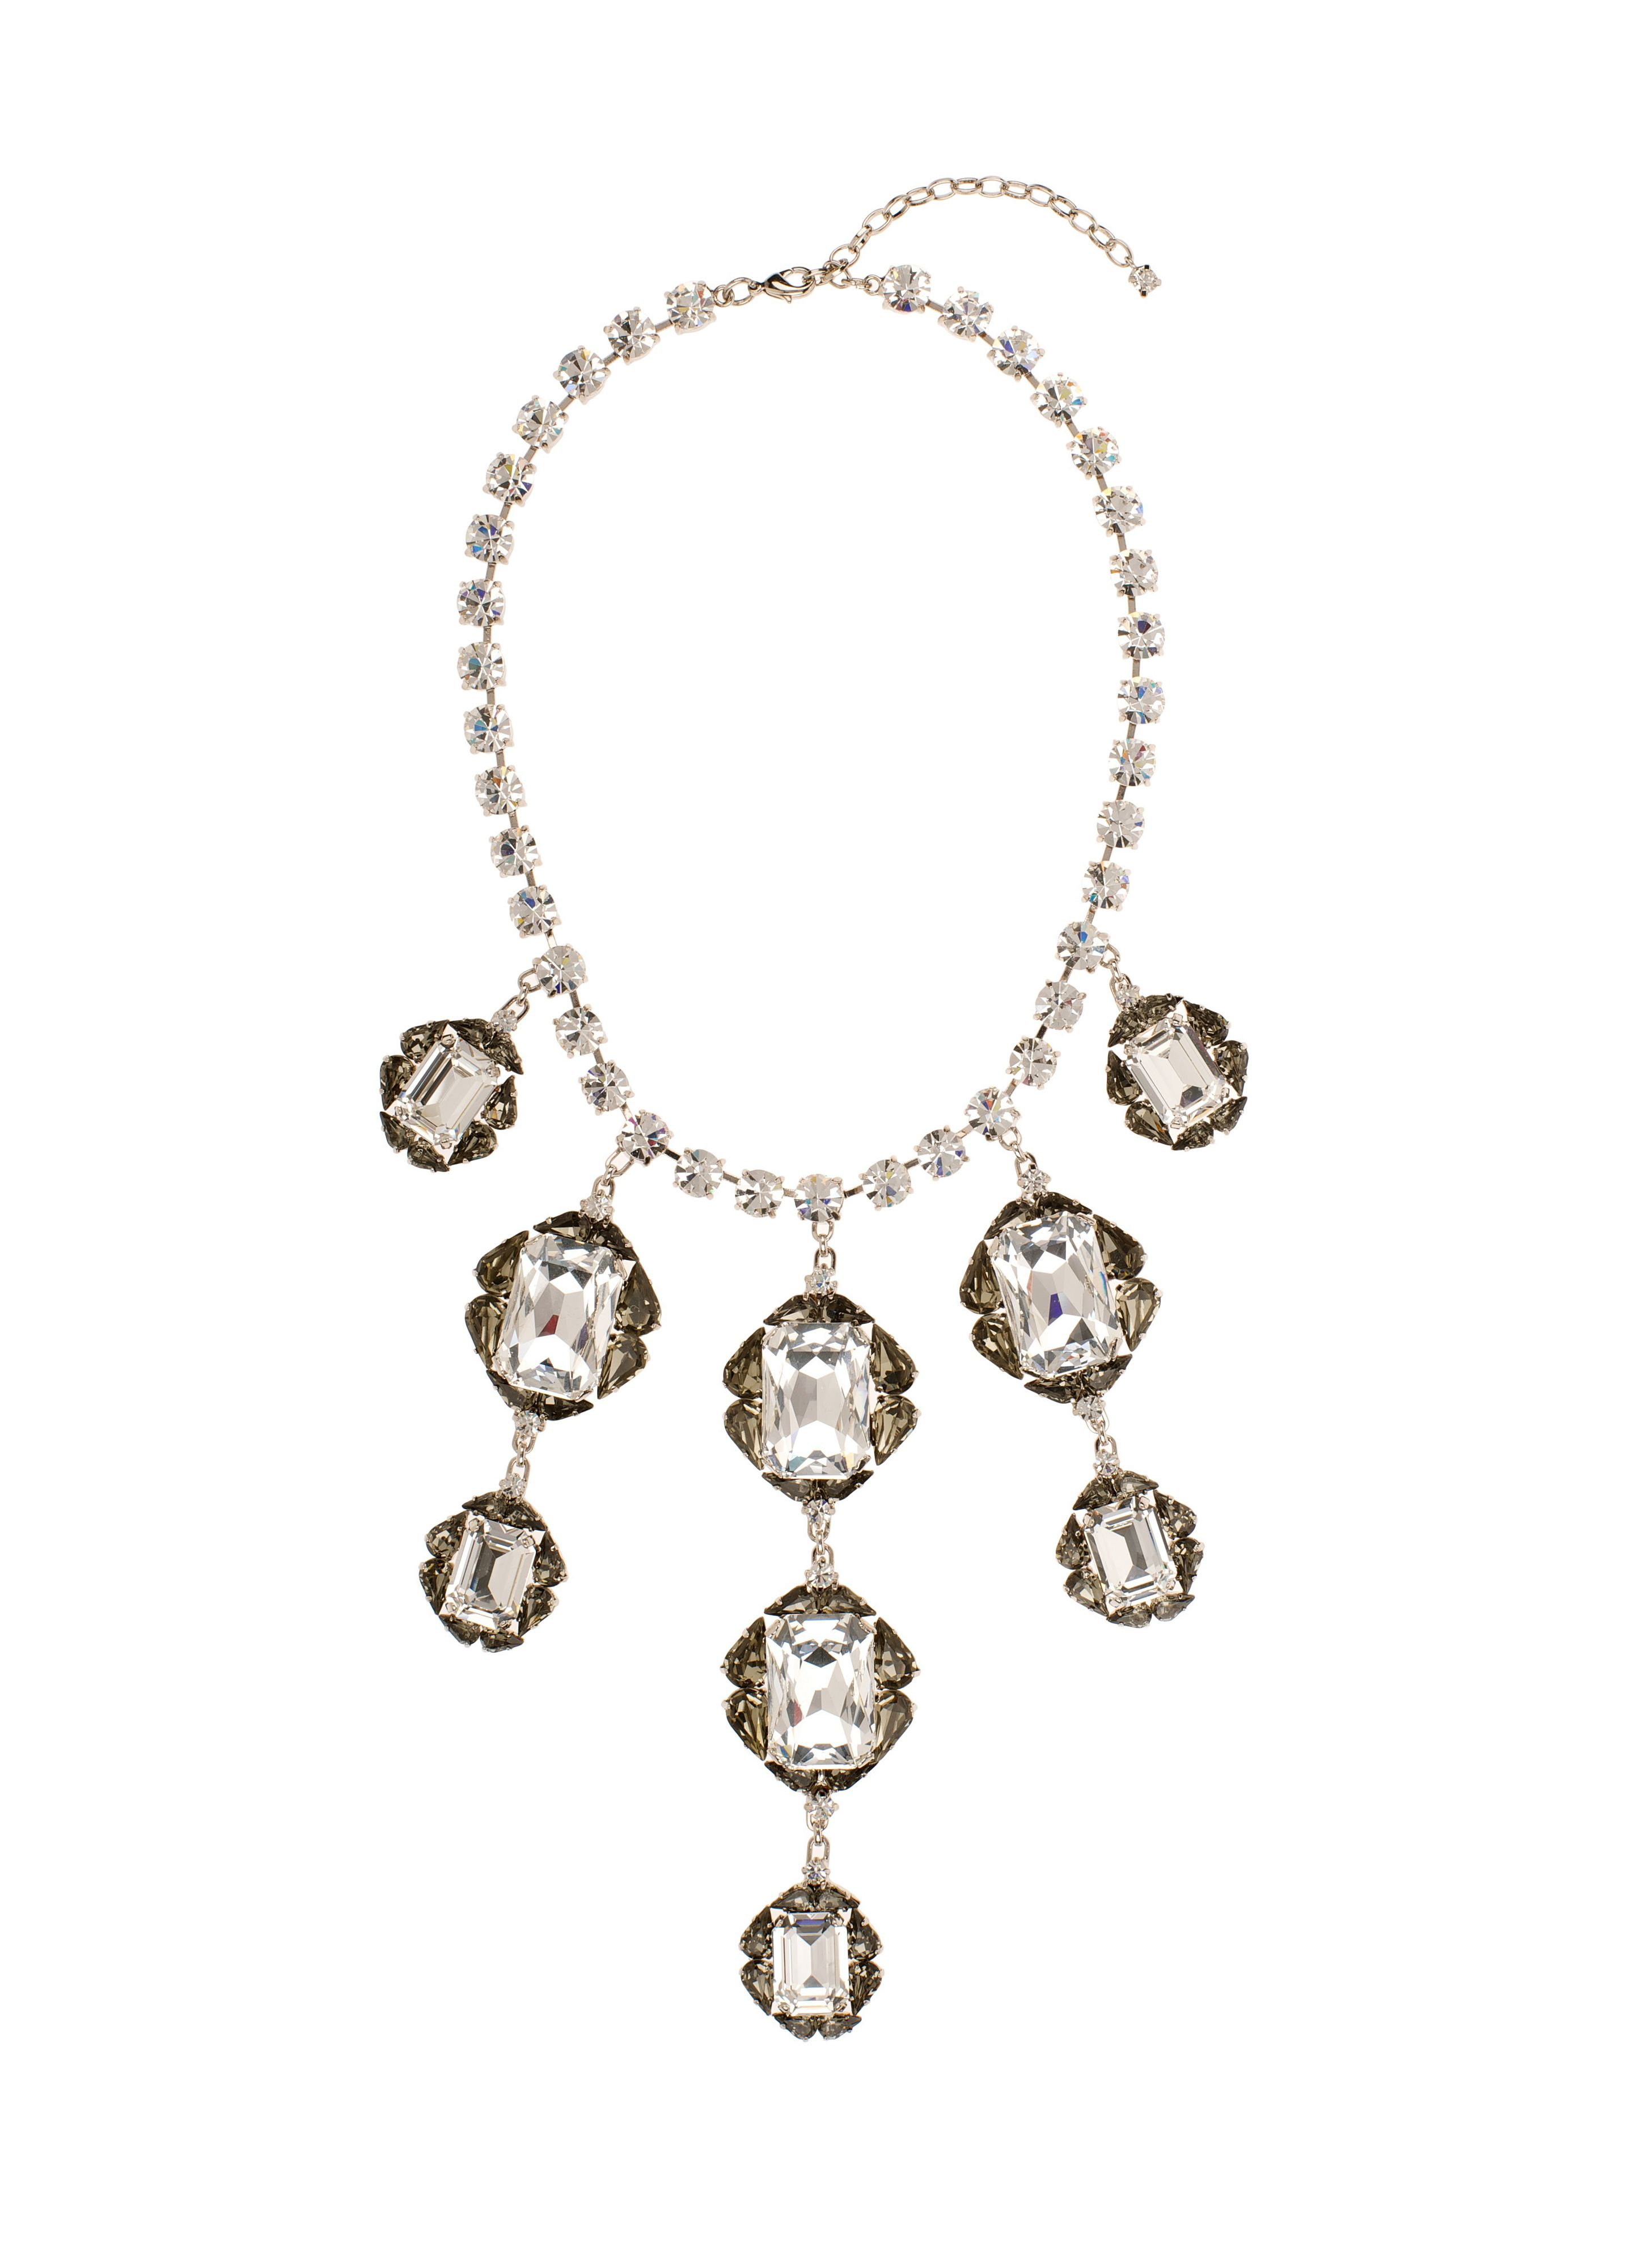 Giant crystal cascading necklace